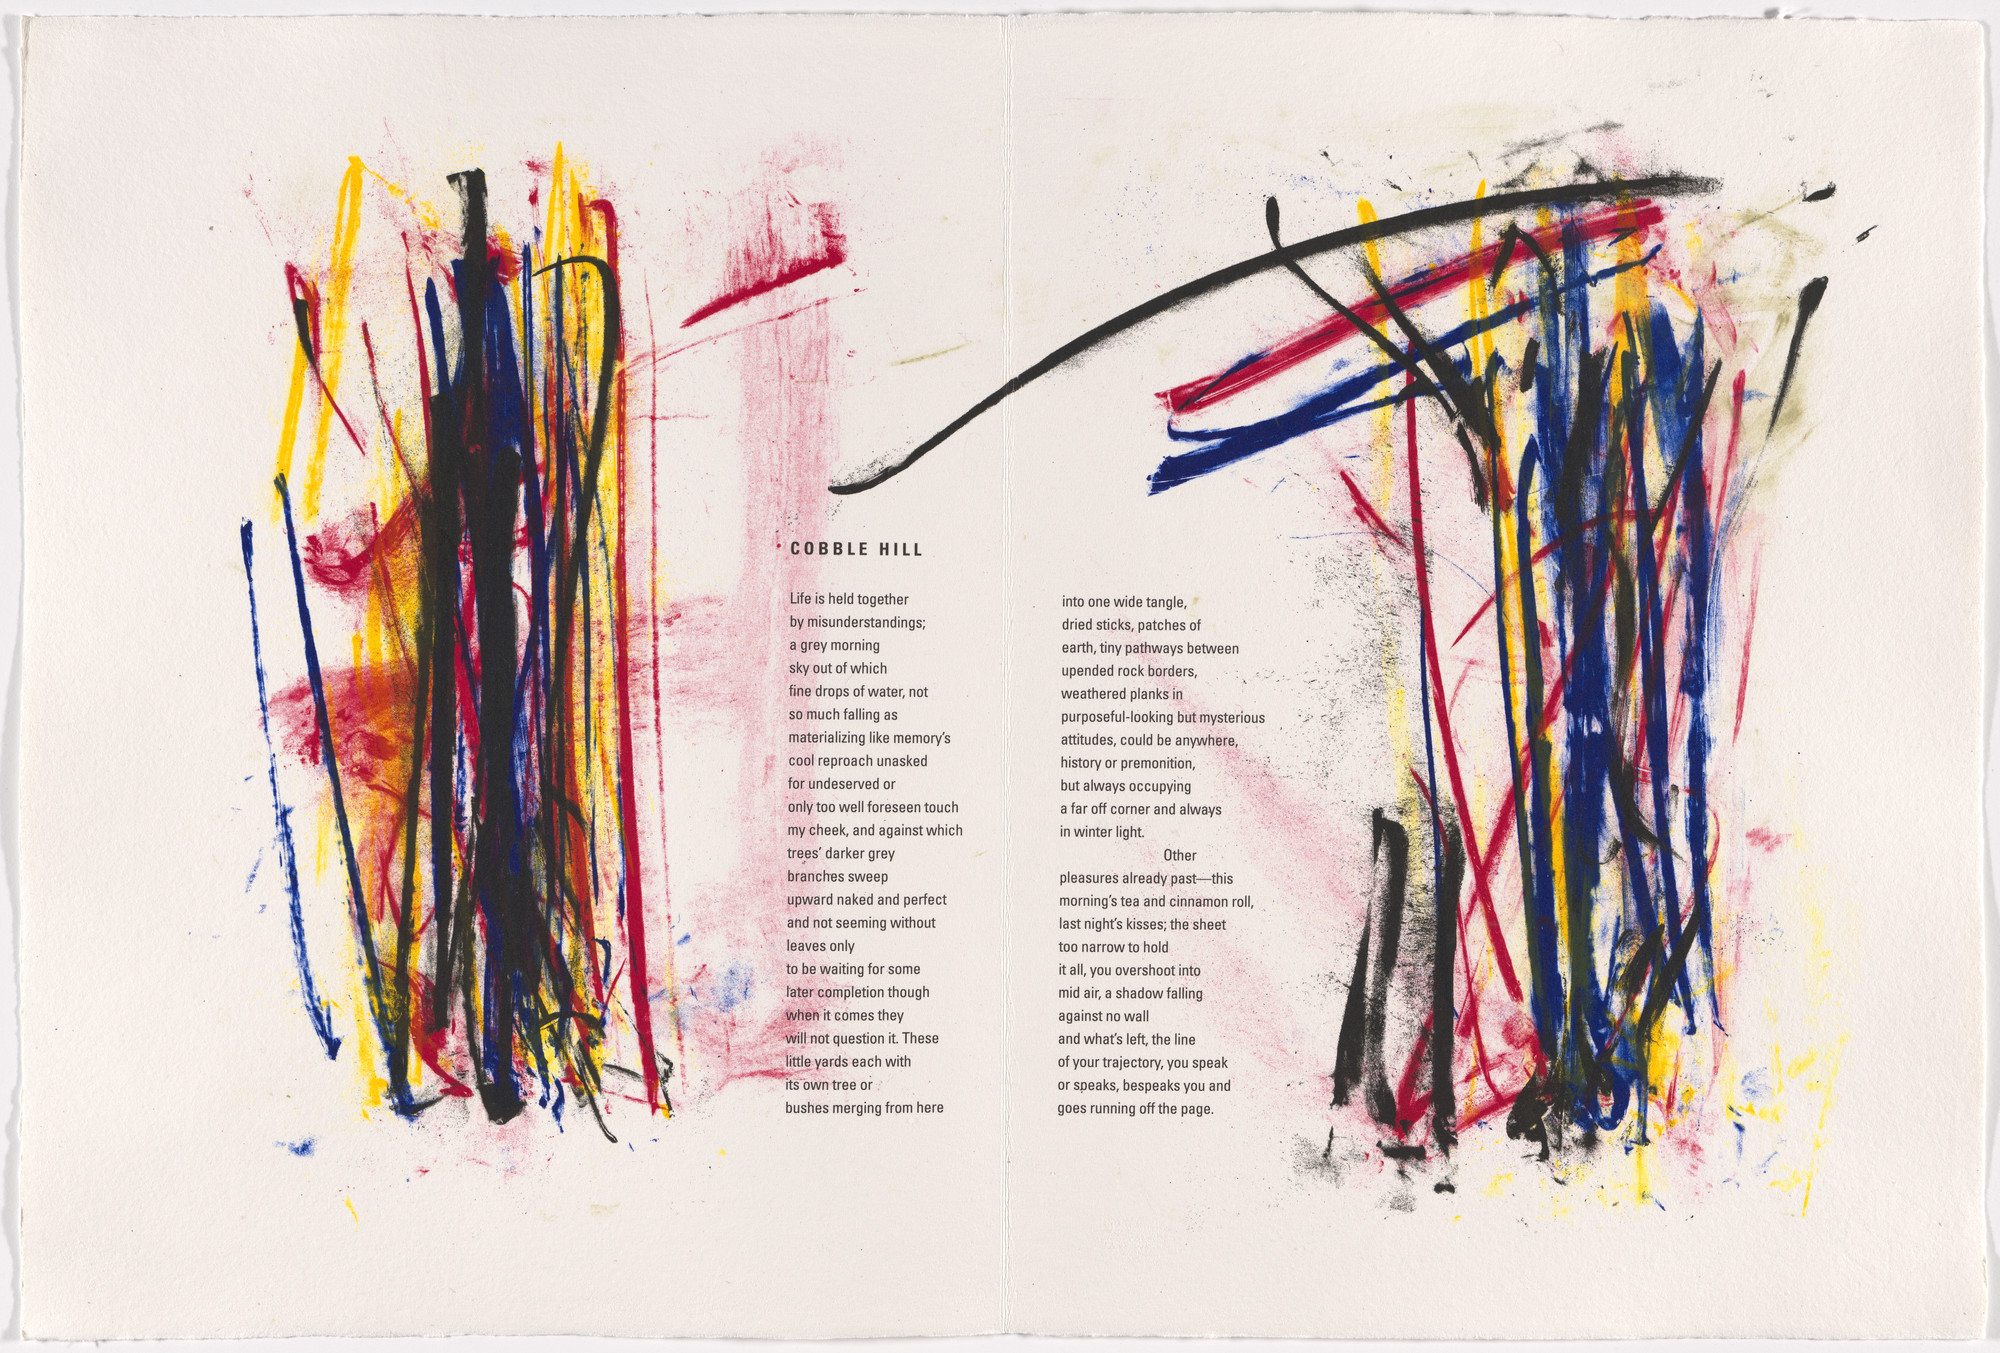 Joan Mitchell. Double page in-text plate (folios 5 verso and 6) from Poems. 1992